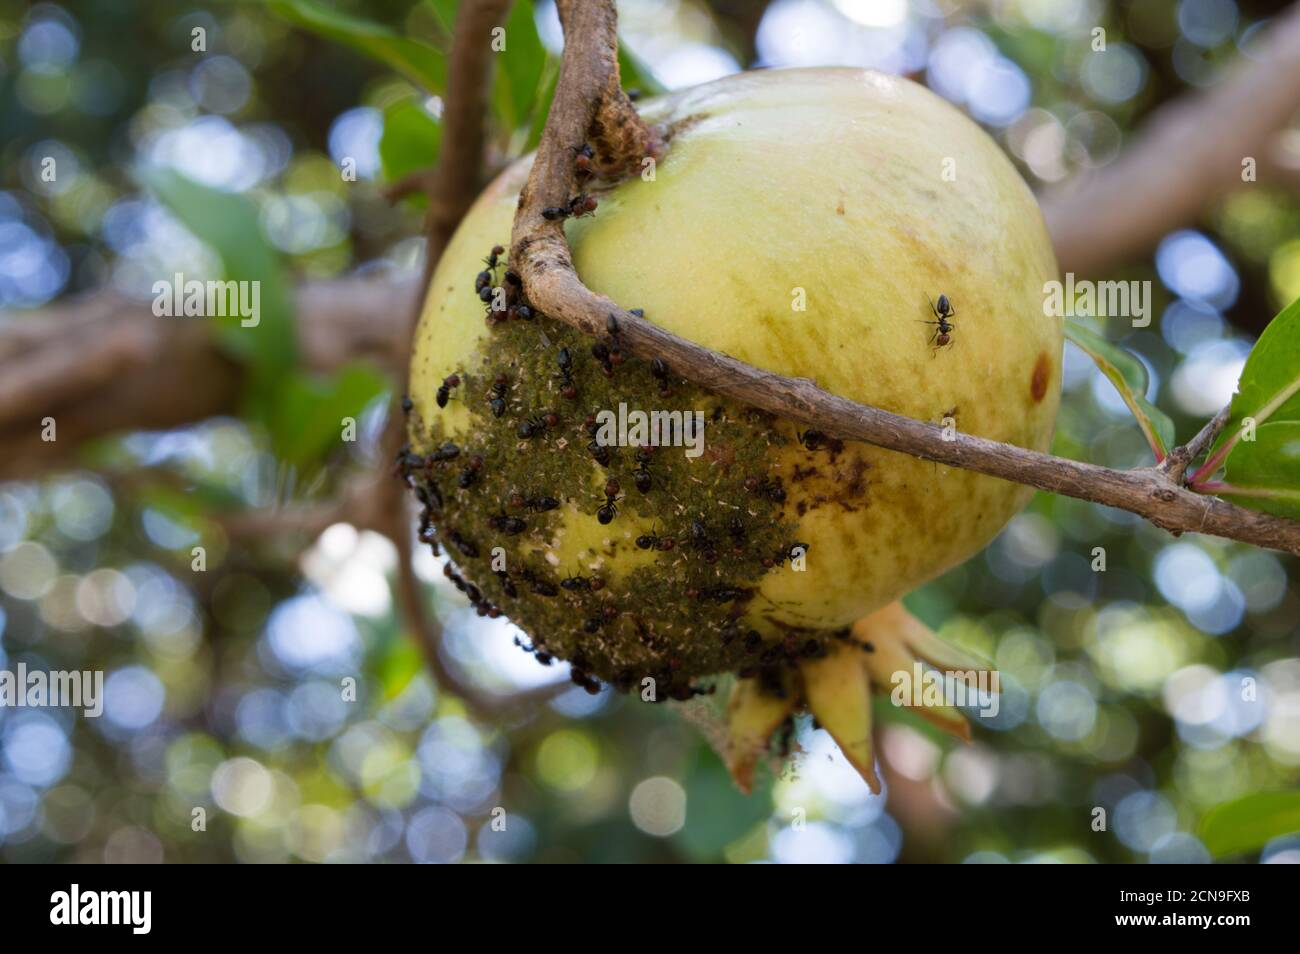 Ants Problem High Resolution Stock Photography And Images Alamy